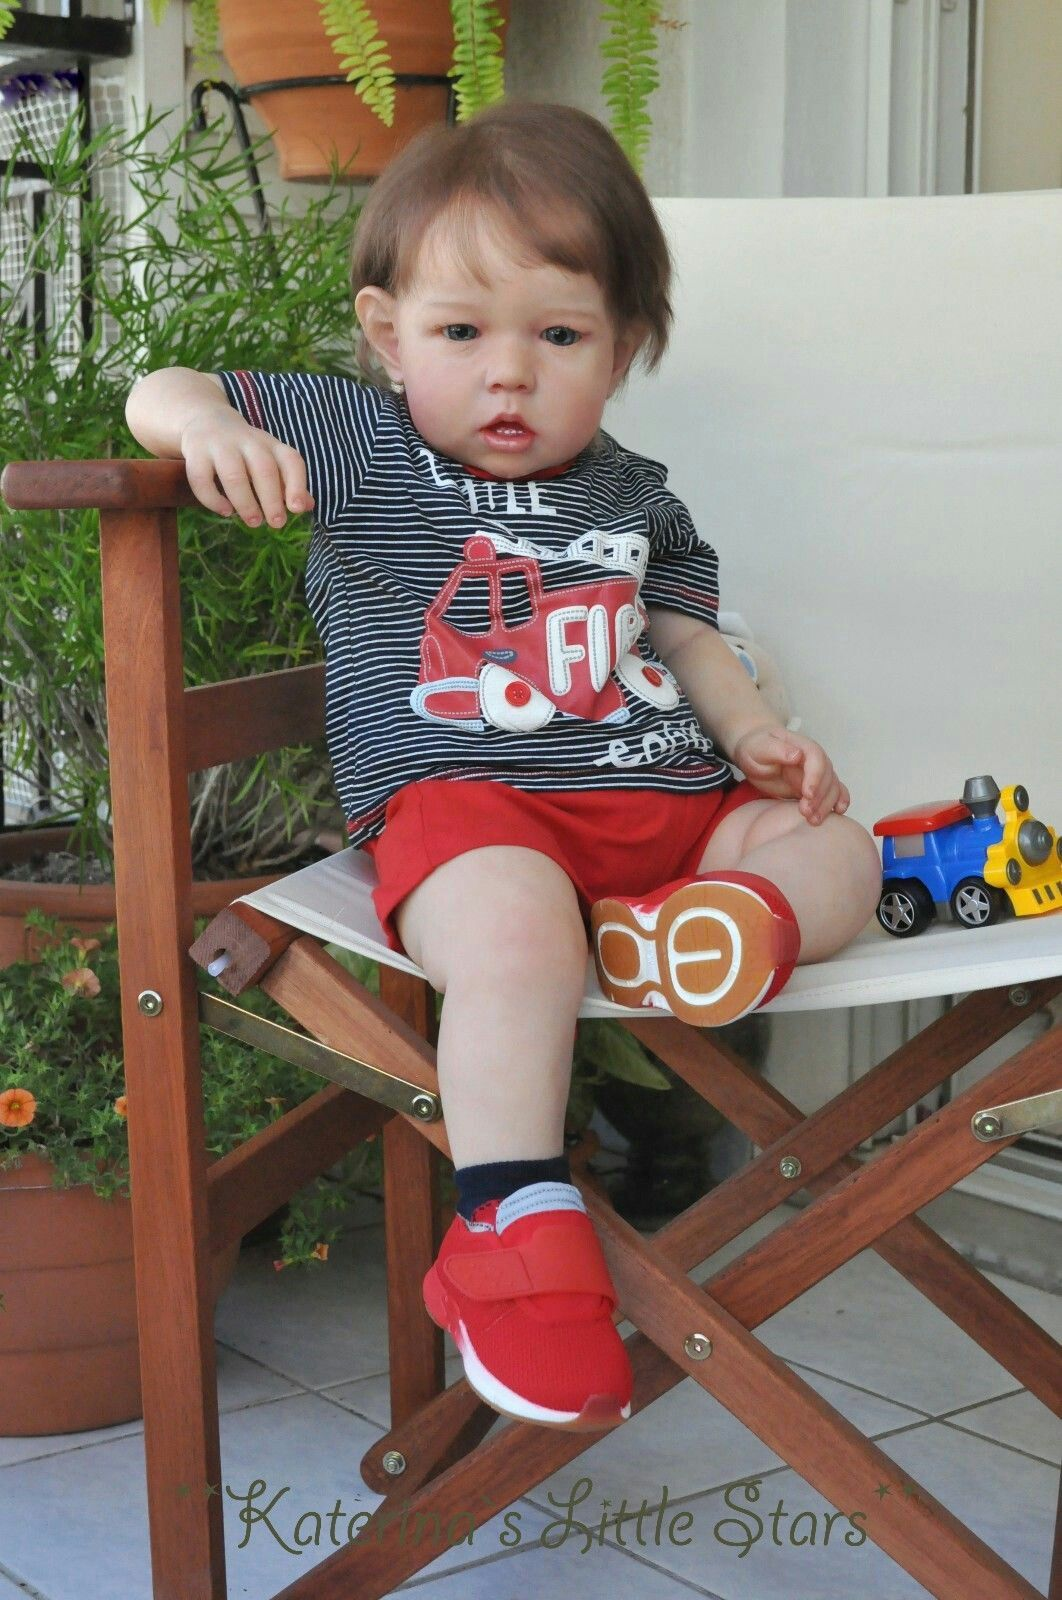 Pin By Leena On Kit Liam Bonnie Bwon Toddler Dolls Baby Dolls For Toddlers Realistic Baby Dolls